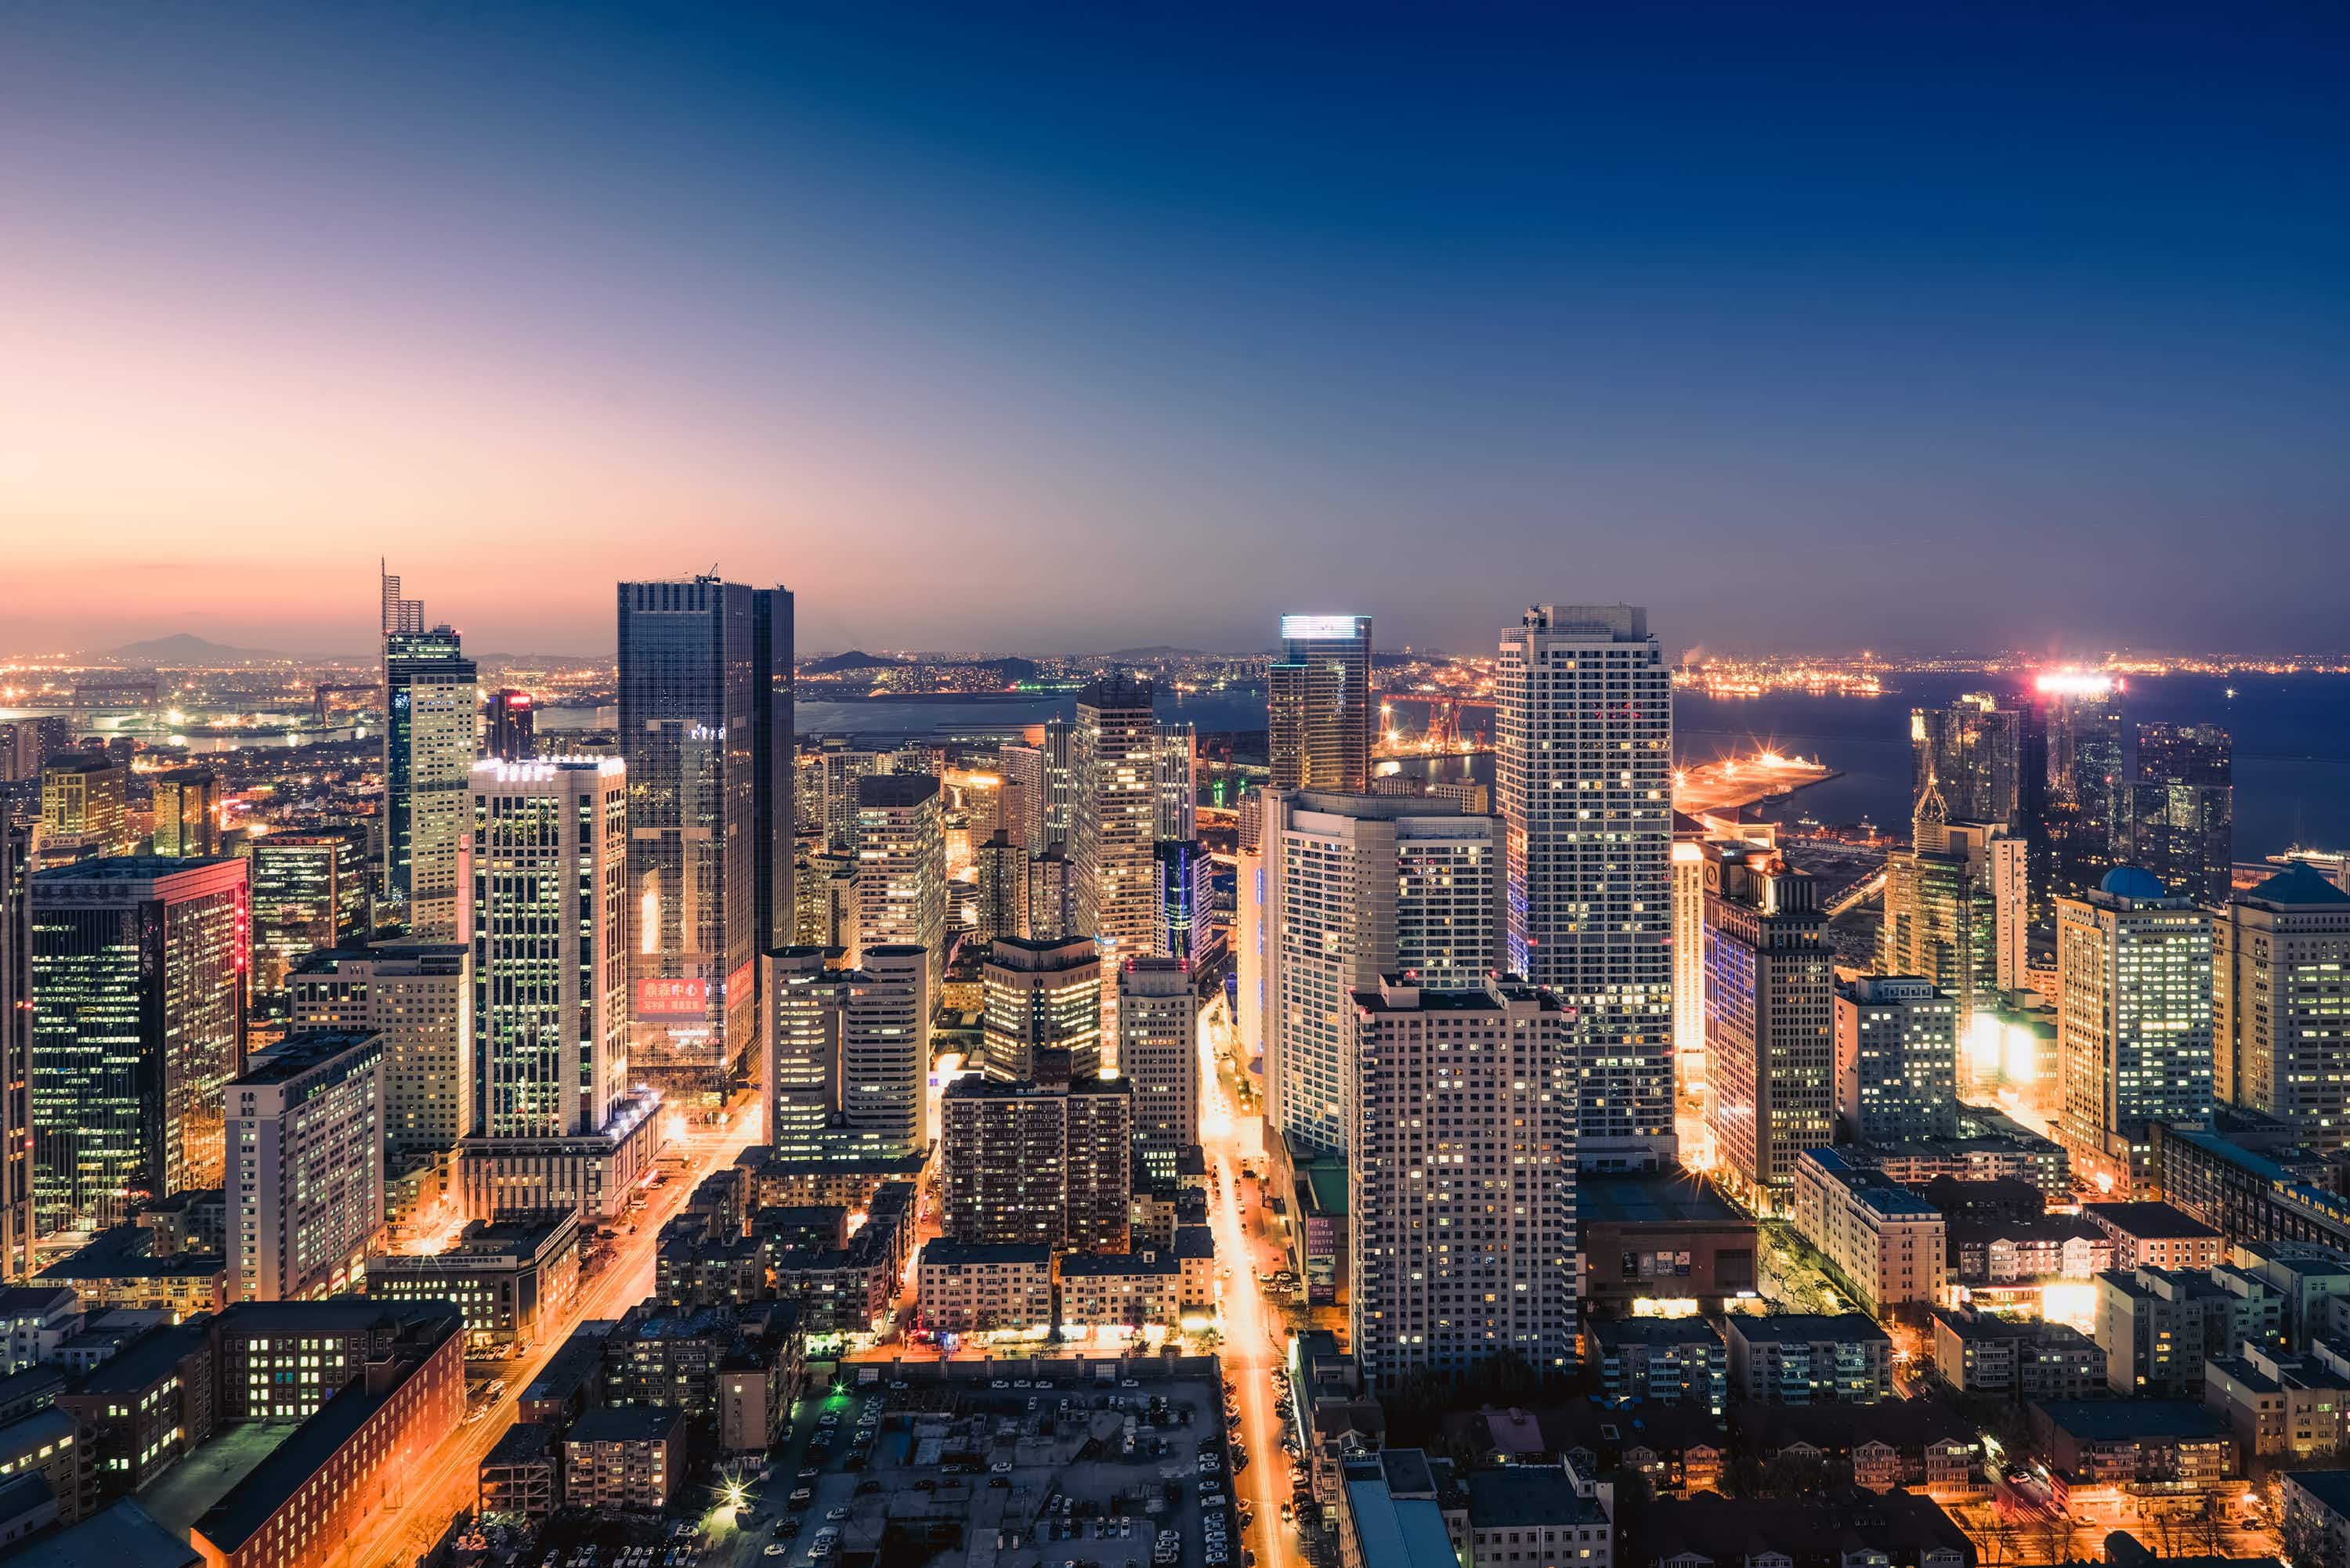 48 hours in Shenyang